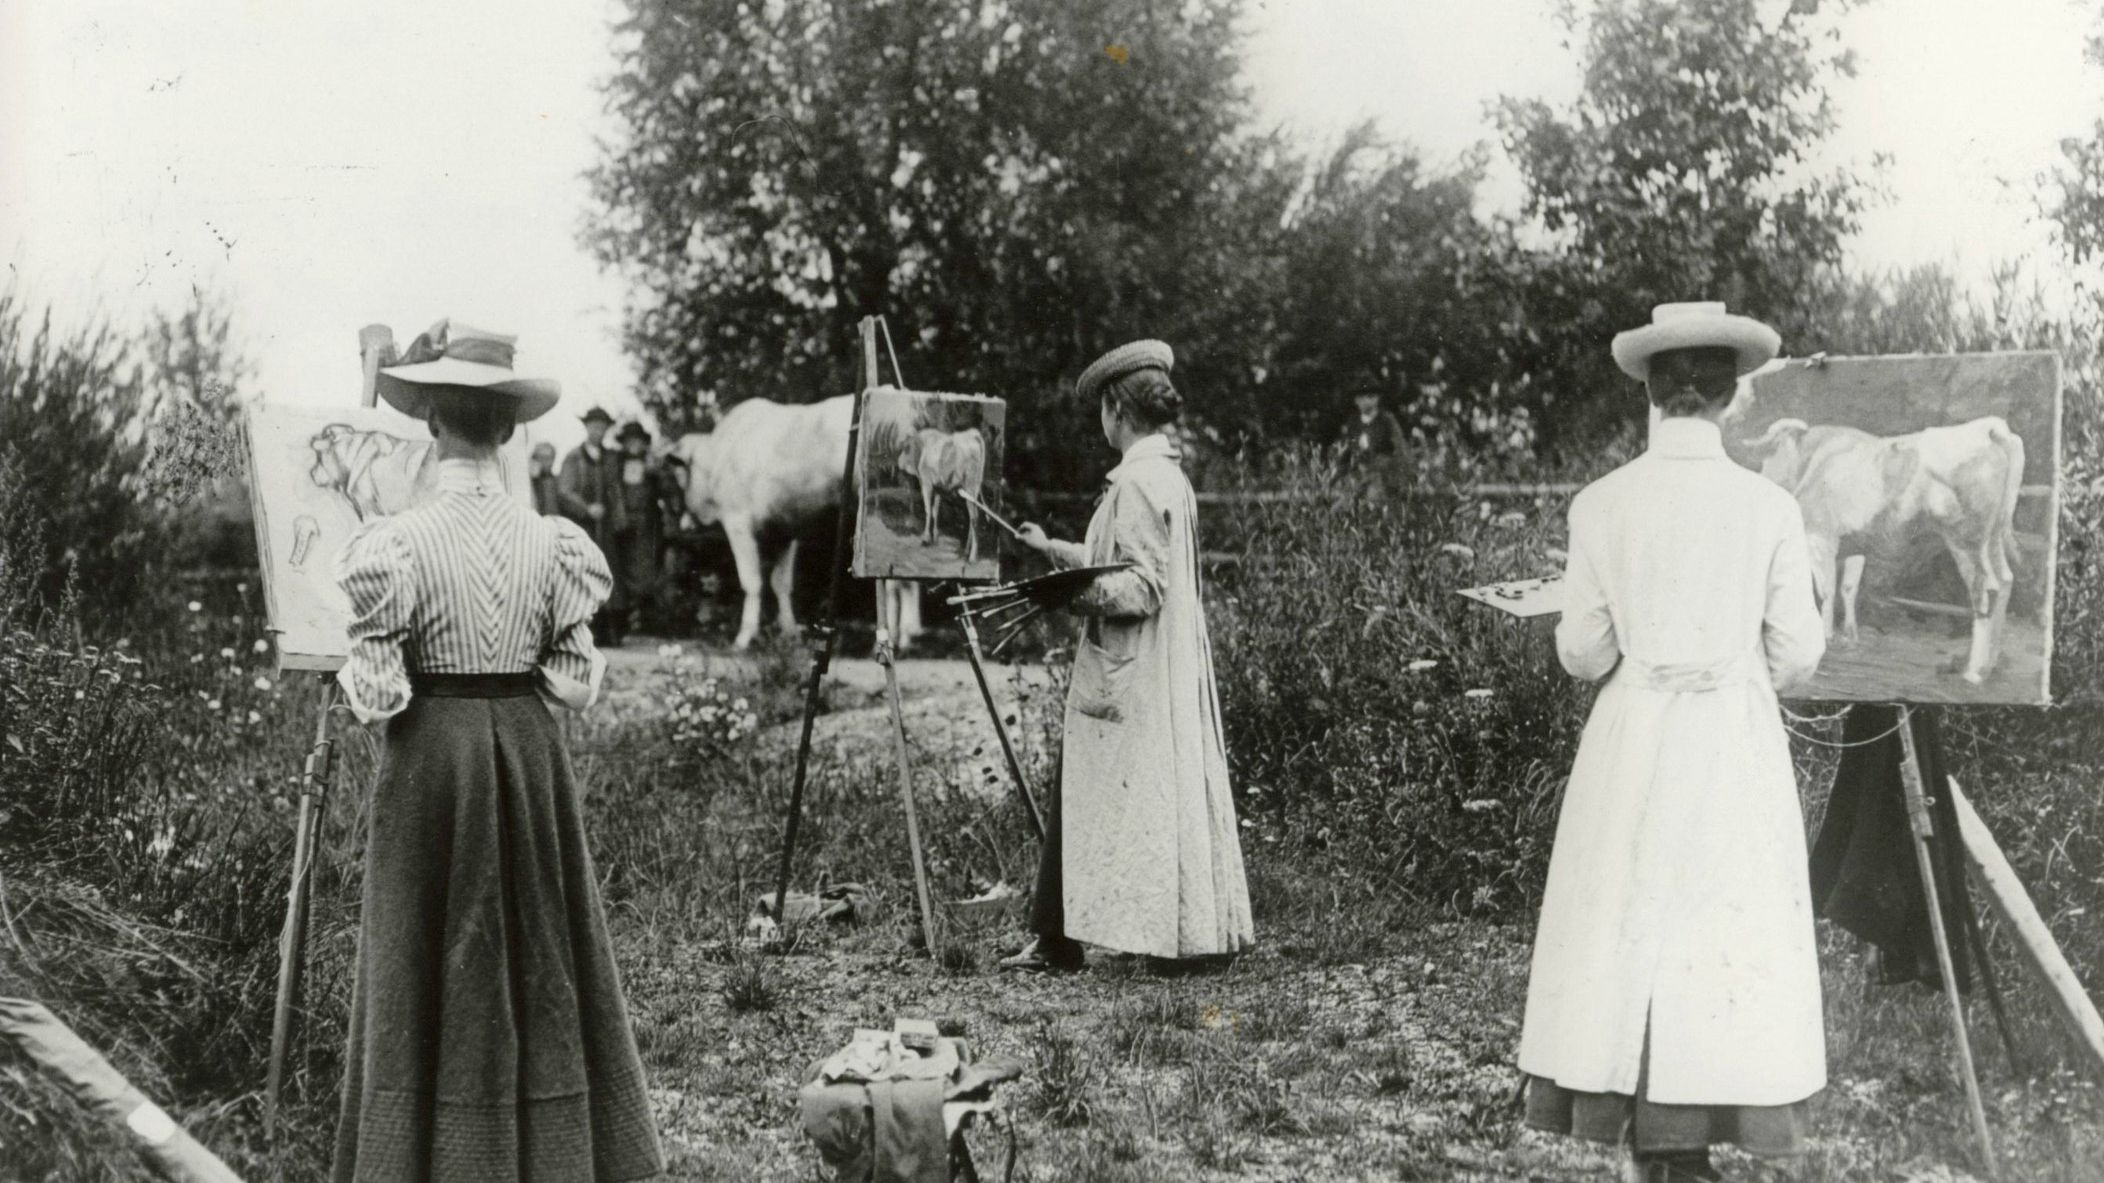 Black and white photographie of a womens' outdoor painting class around the year 1900 with easels and cow, trees in the background. Photo: Zweckverband Dachauer Galerien und Museen.